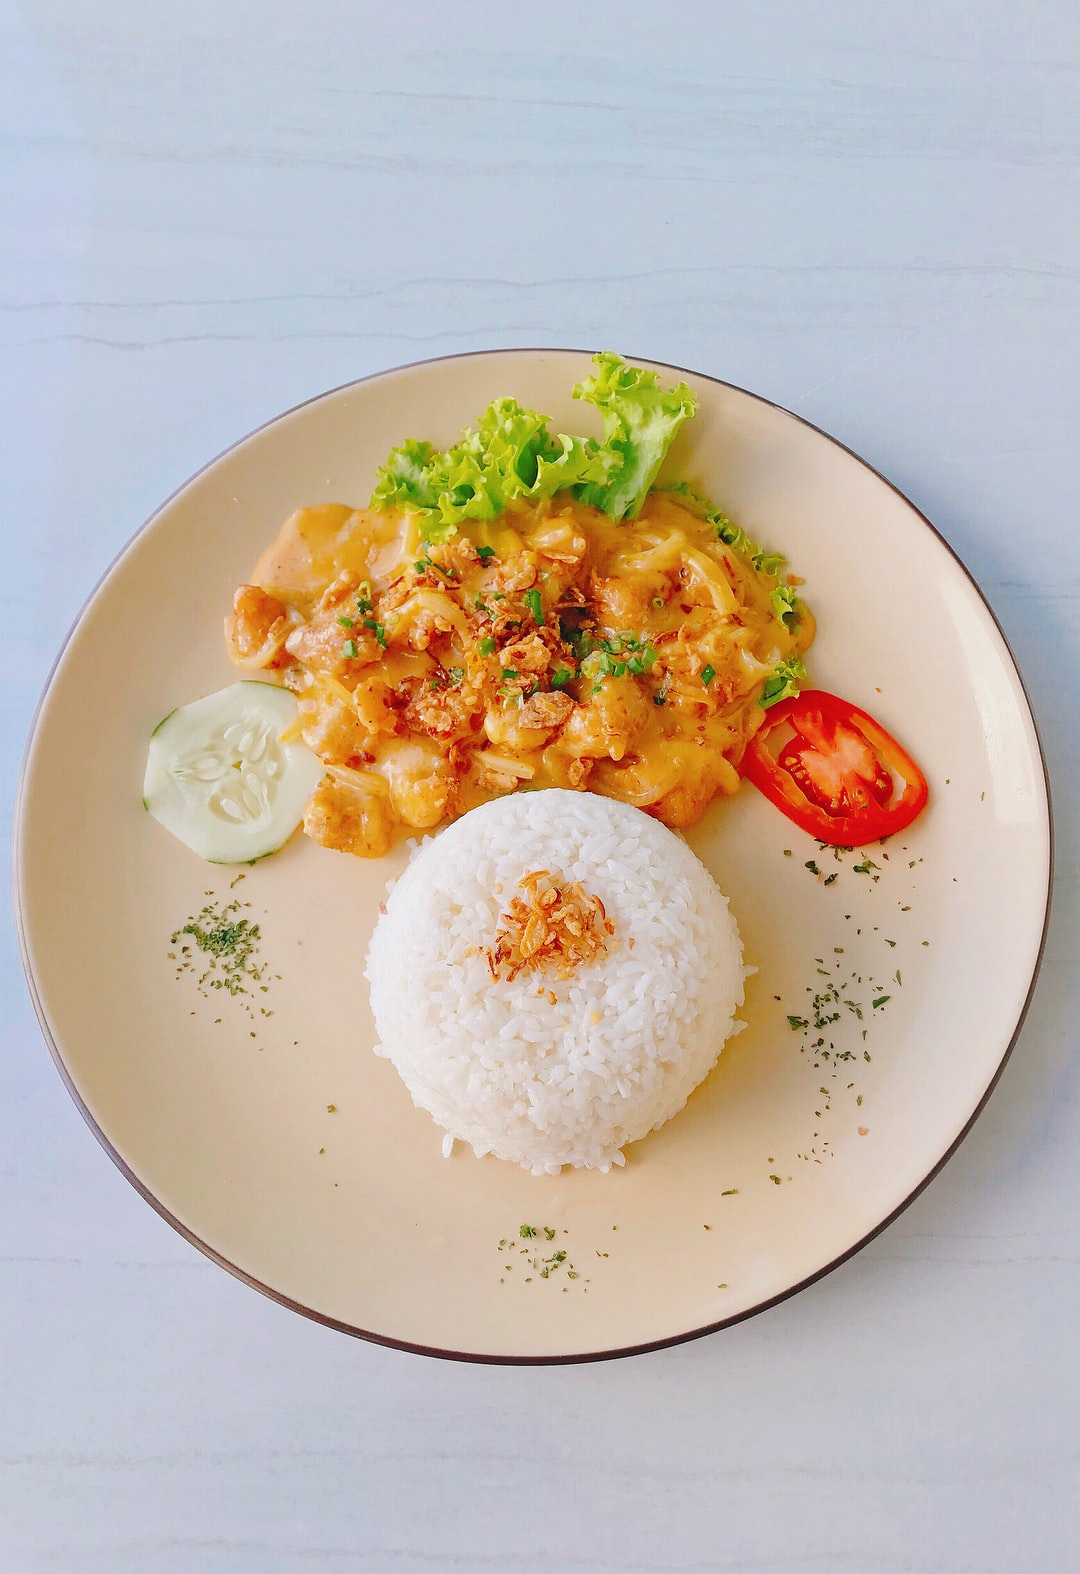 Salted egg chicken rice for lunch